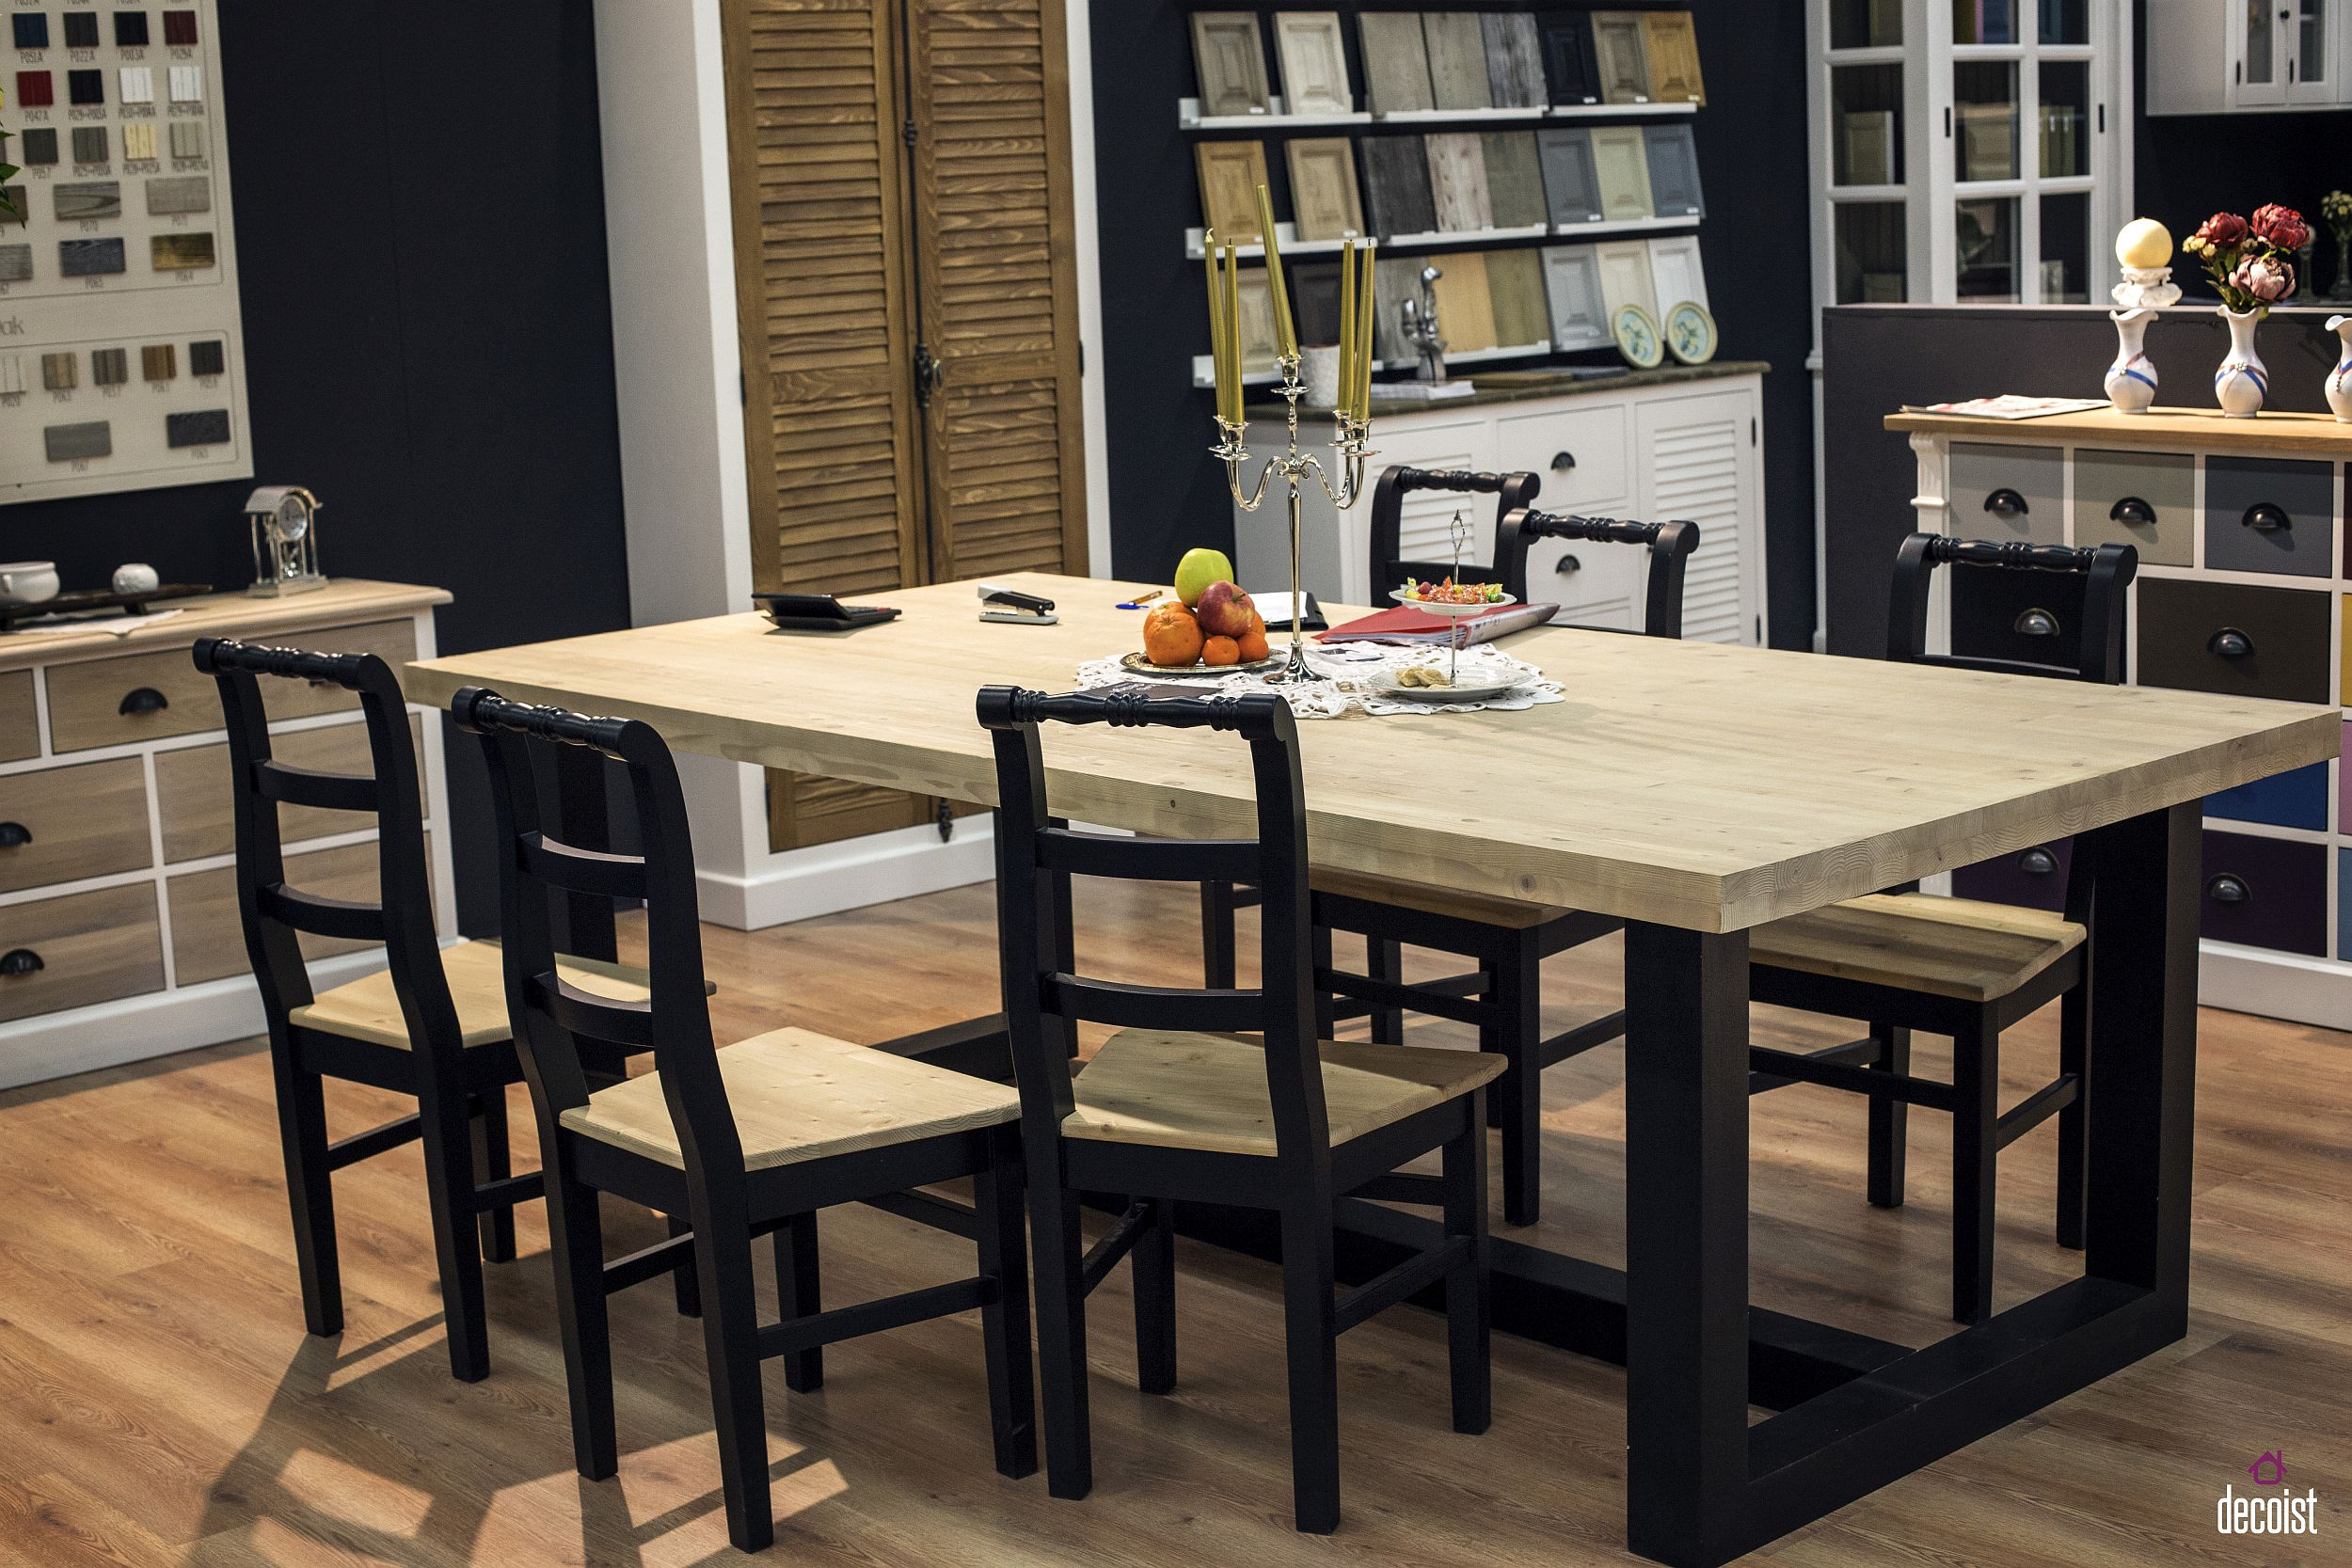 Clean straight lines give the classic wooden dining table a modern look